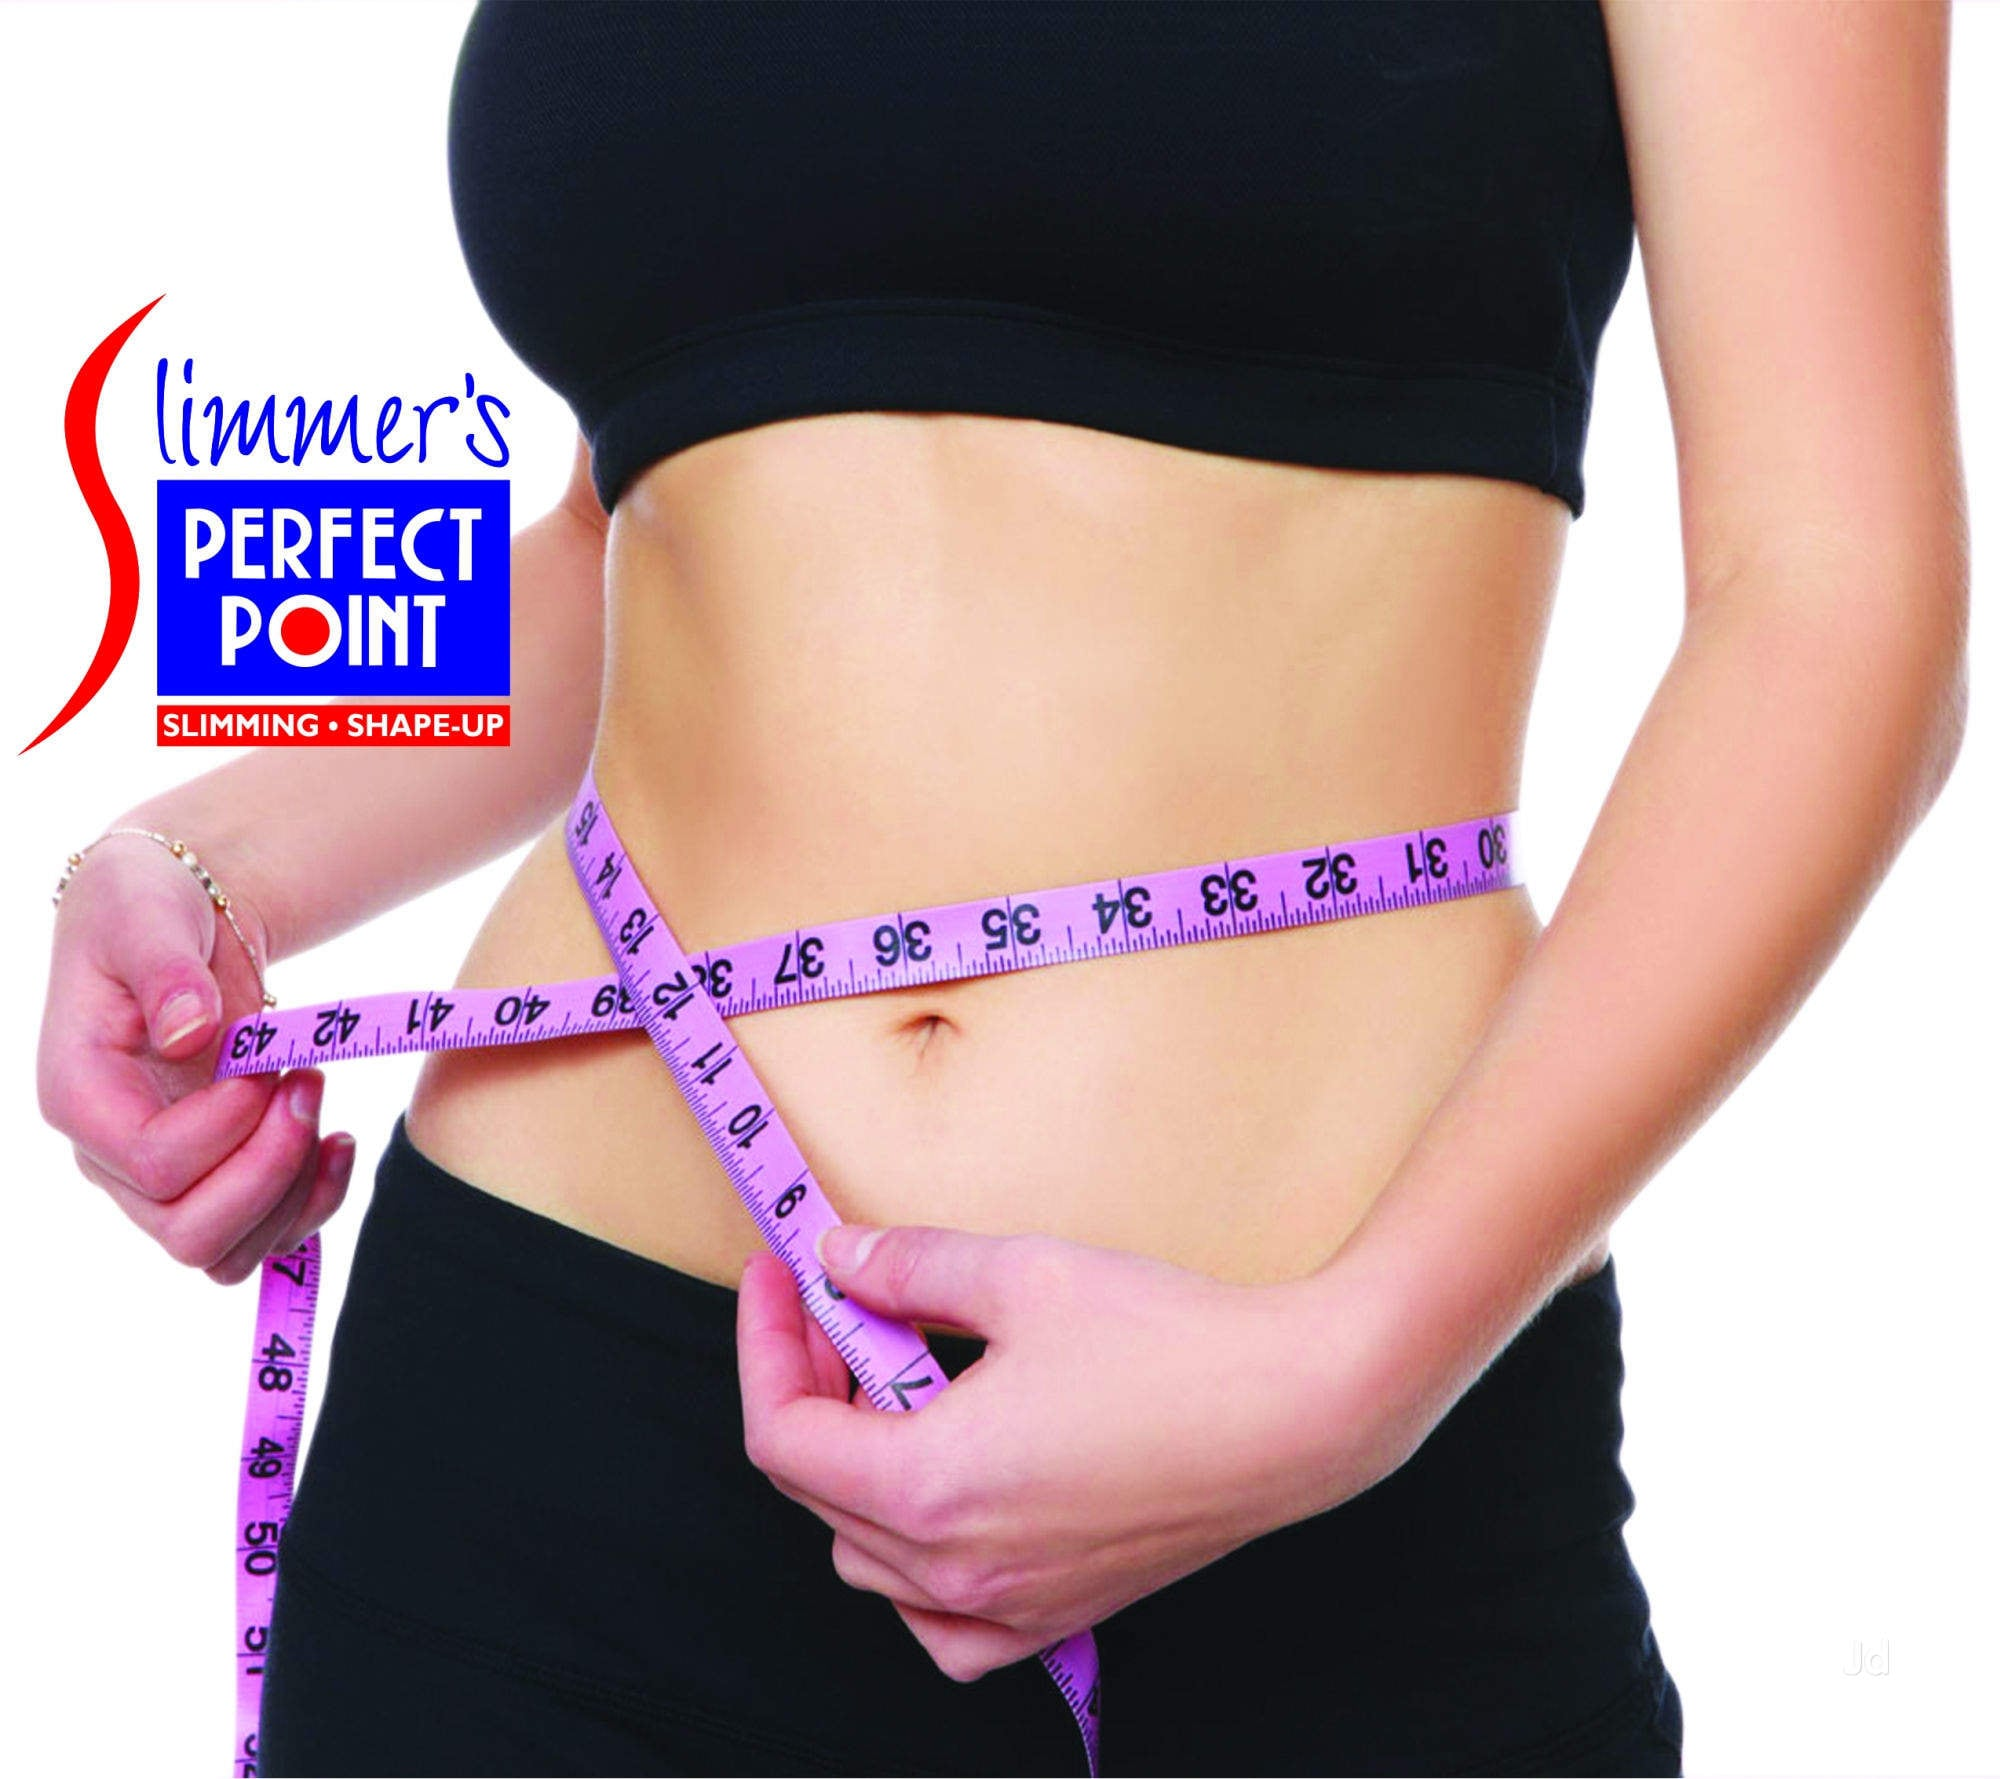 Top 50 Weight Loss Centres in Bhubaneswar - Best Slimming